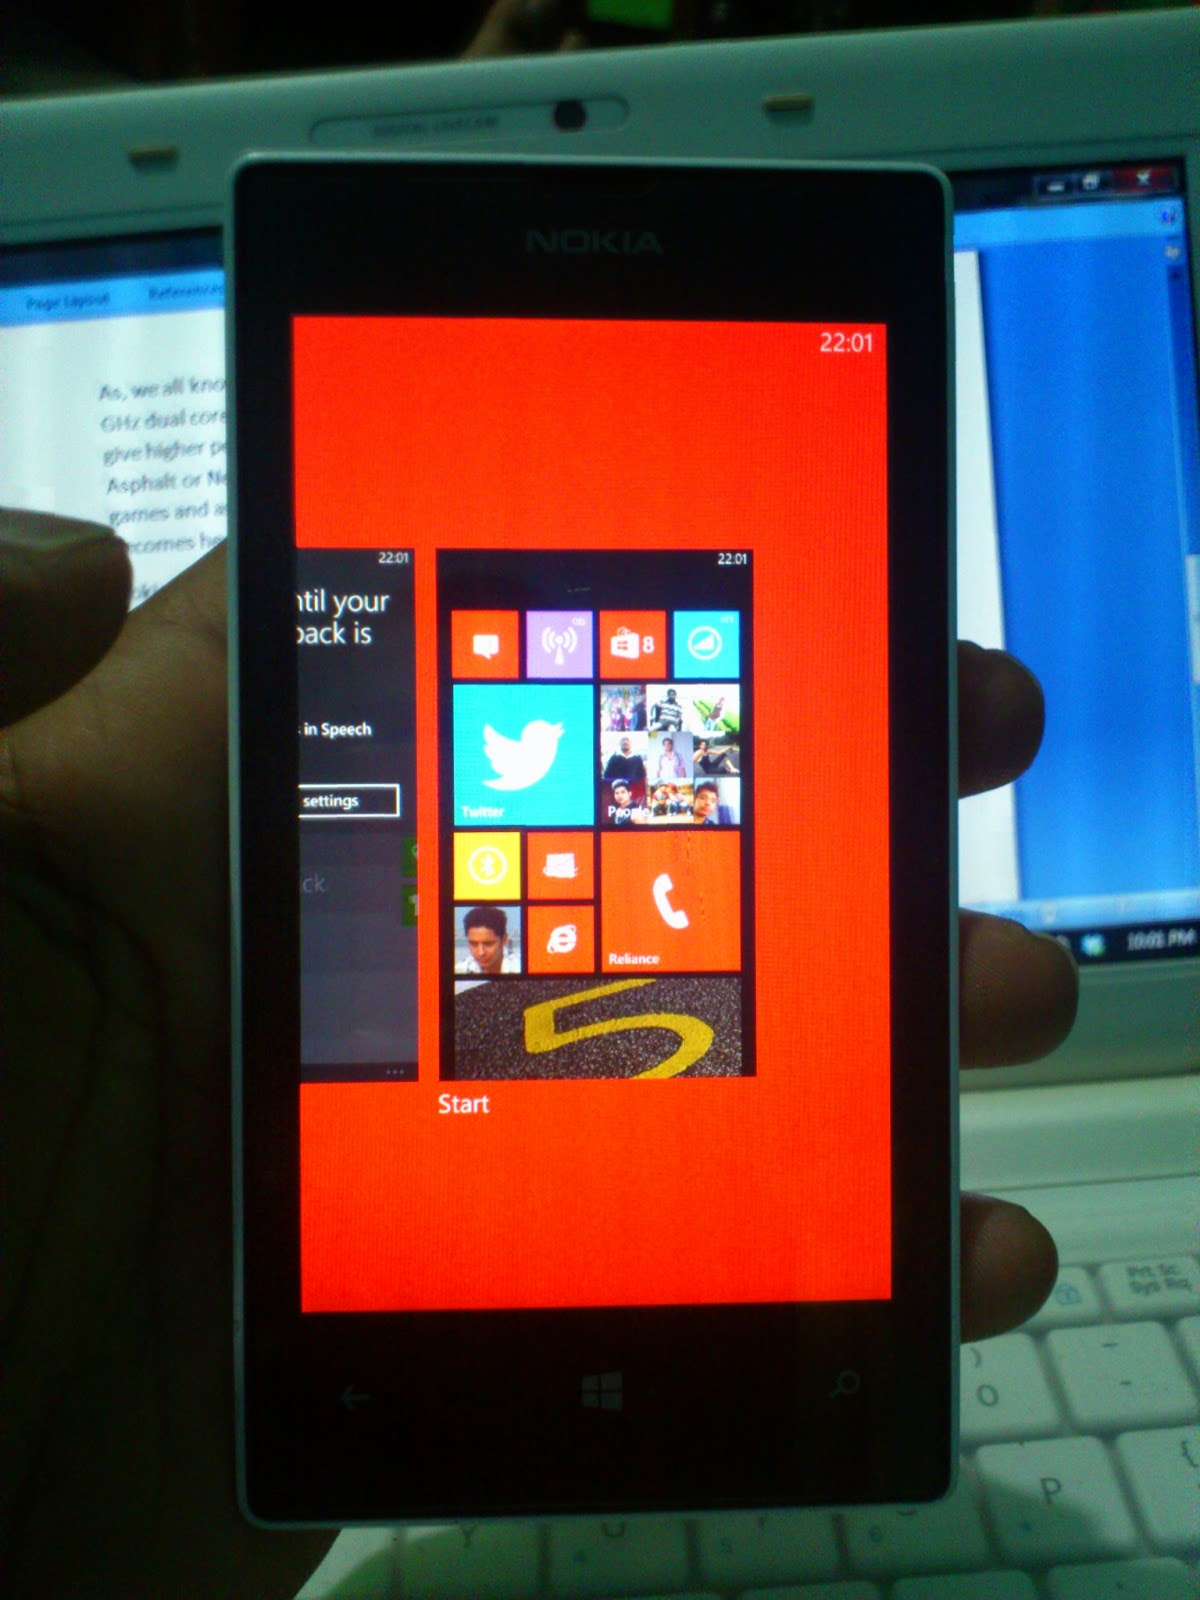 Nokia Lumia 520 MultiTasking